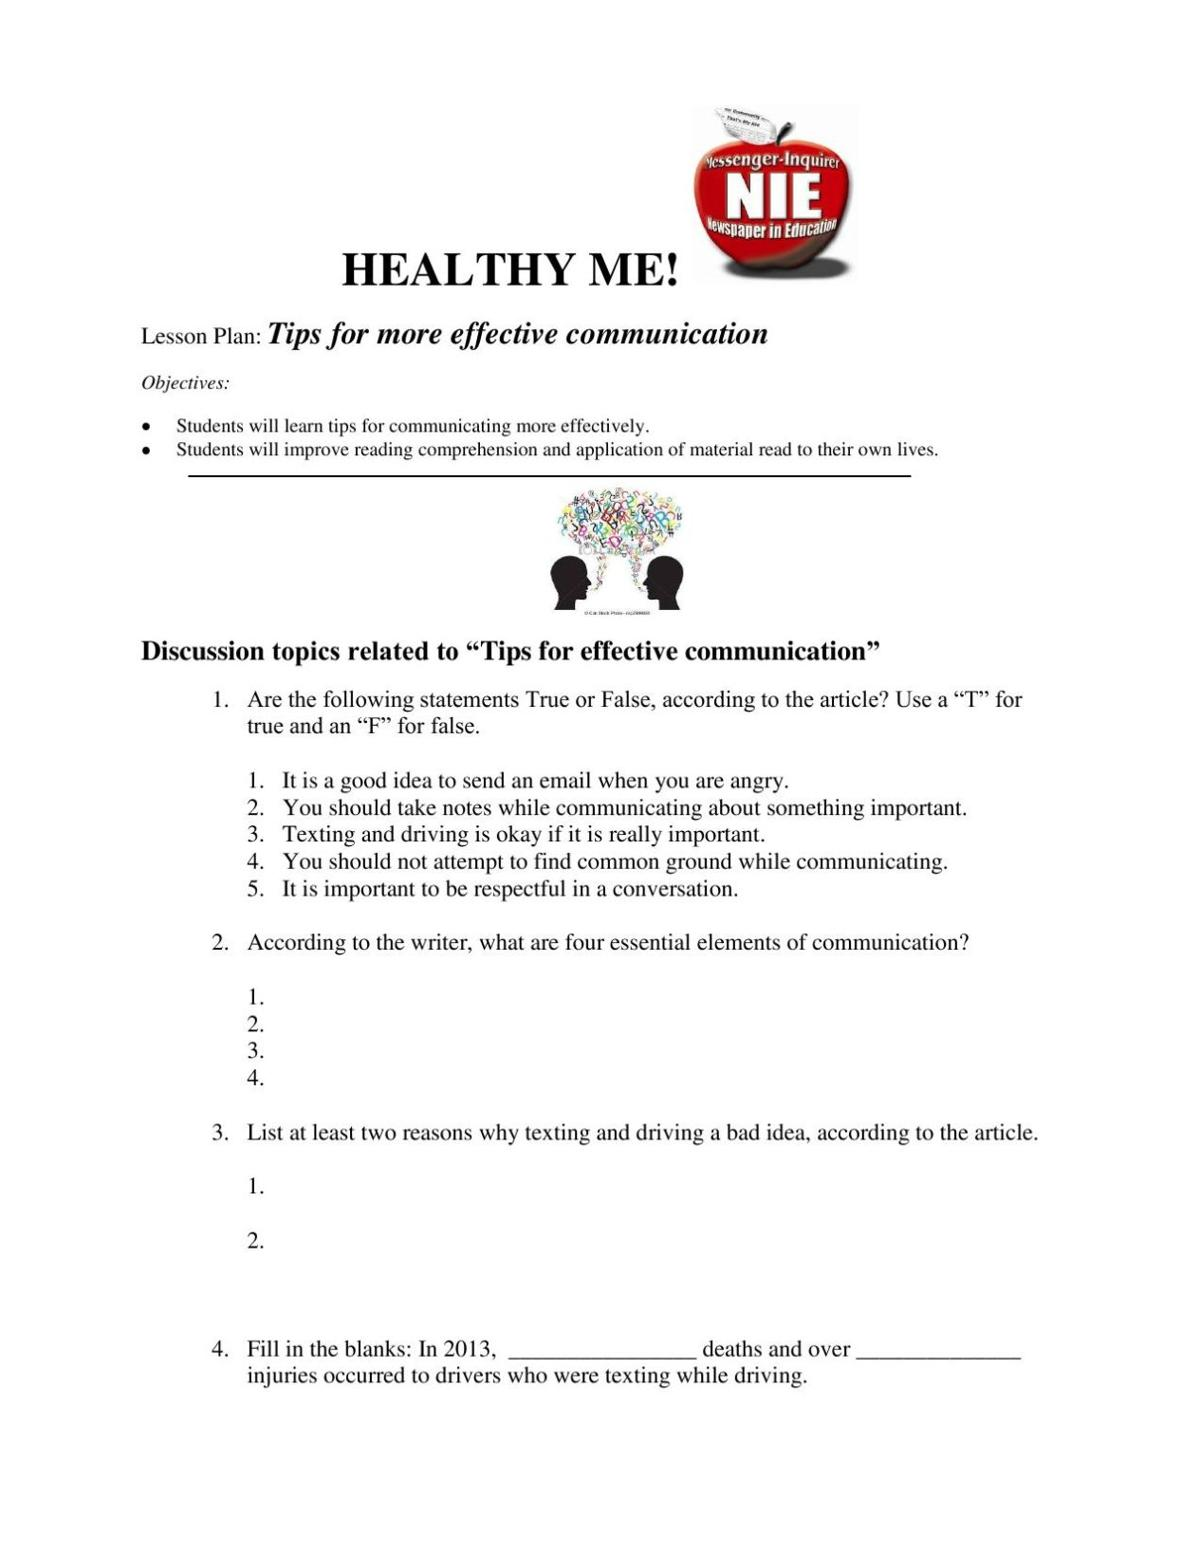 Healthy Me! Tips for More Effective Communication-Quiz | NIE